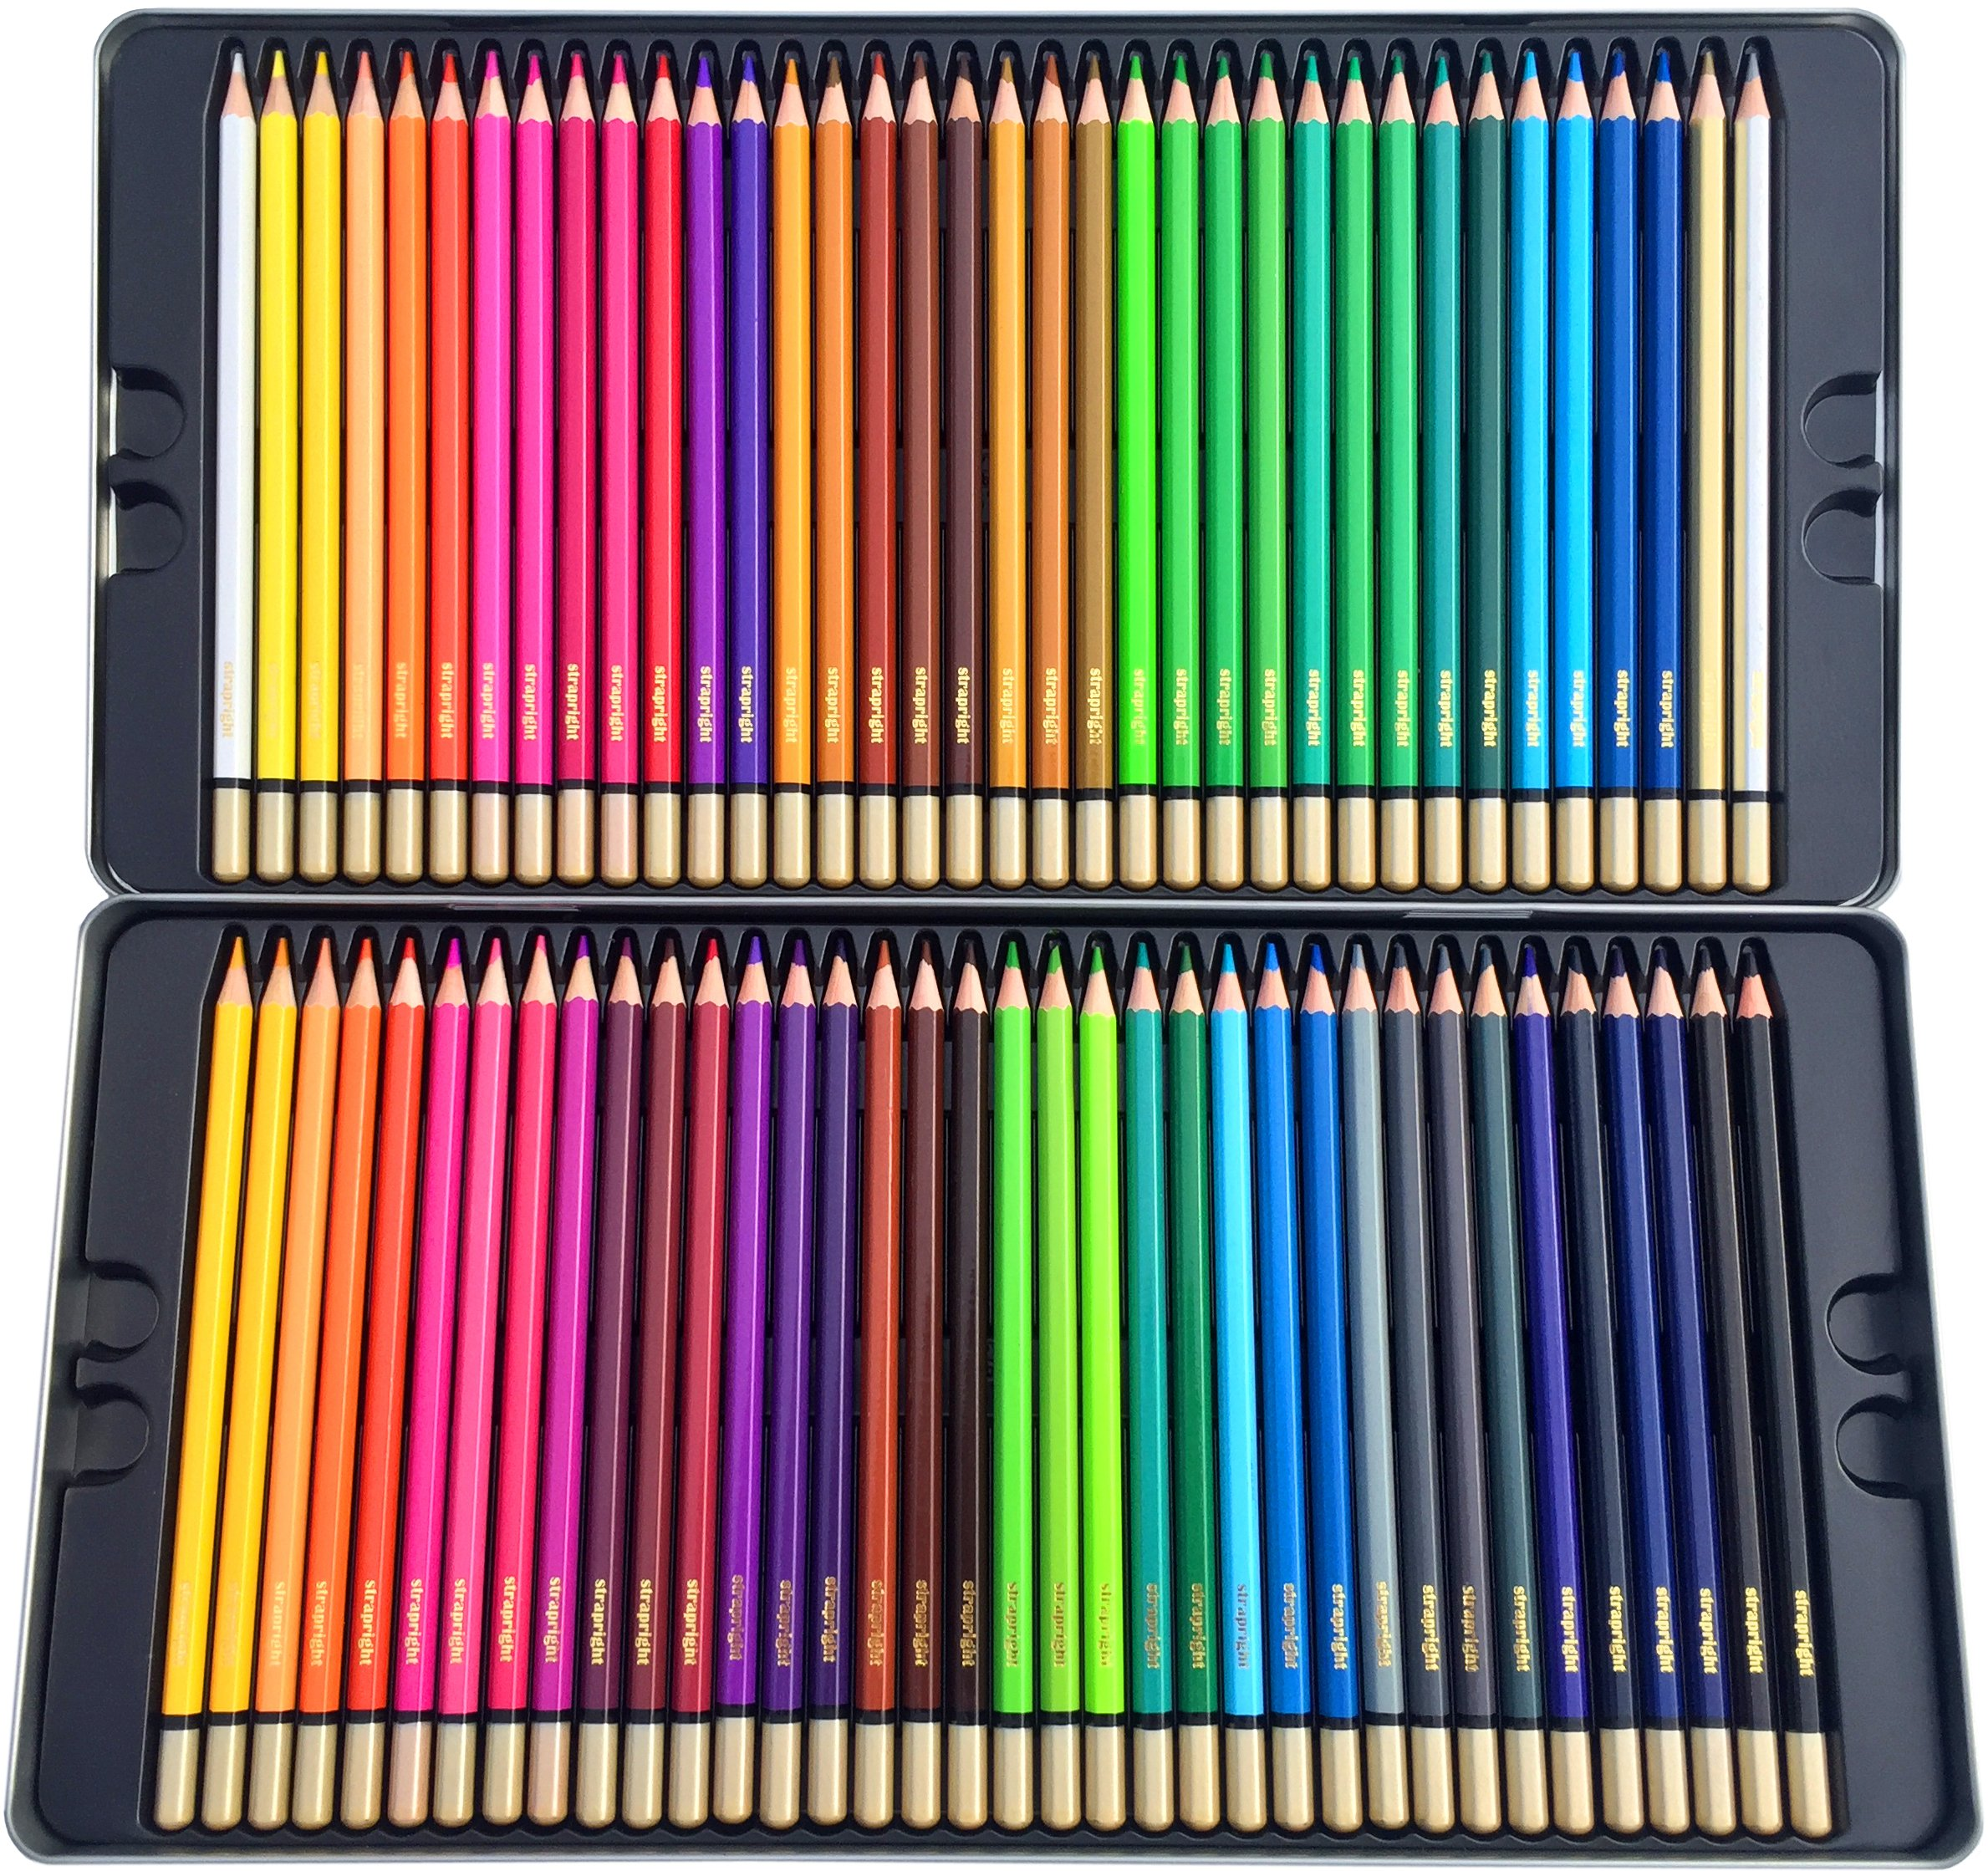 Deluxe Colored Pencils Kit -72 Bright Colors -Pack includes Case & Coloring eBook - Great Gift for Creative Children and Adults -Design, Draw, Blend, Smooth, and Sketch with these Pencils by Strapright